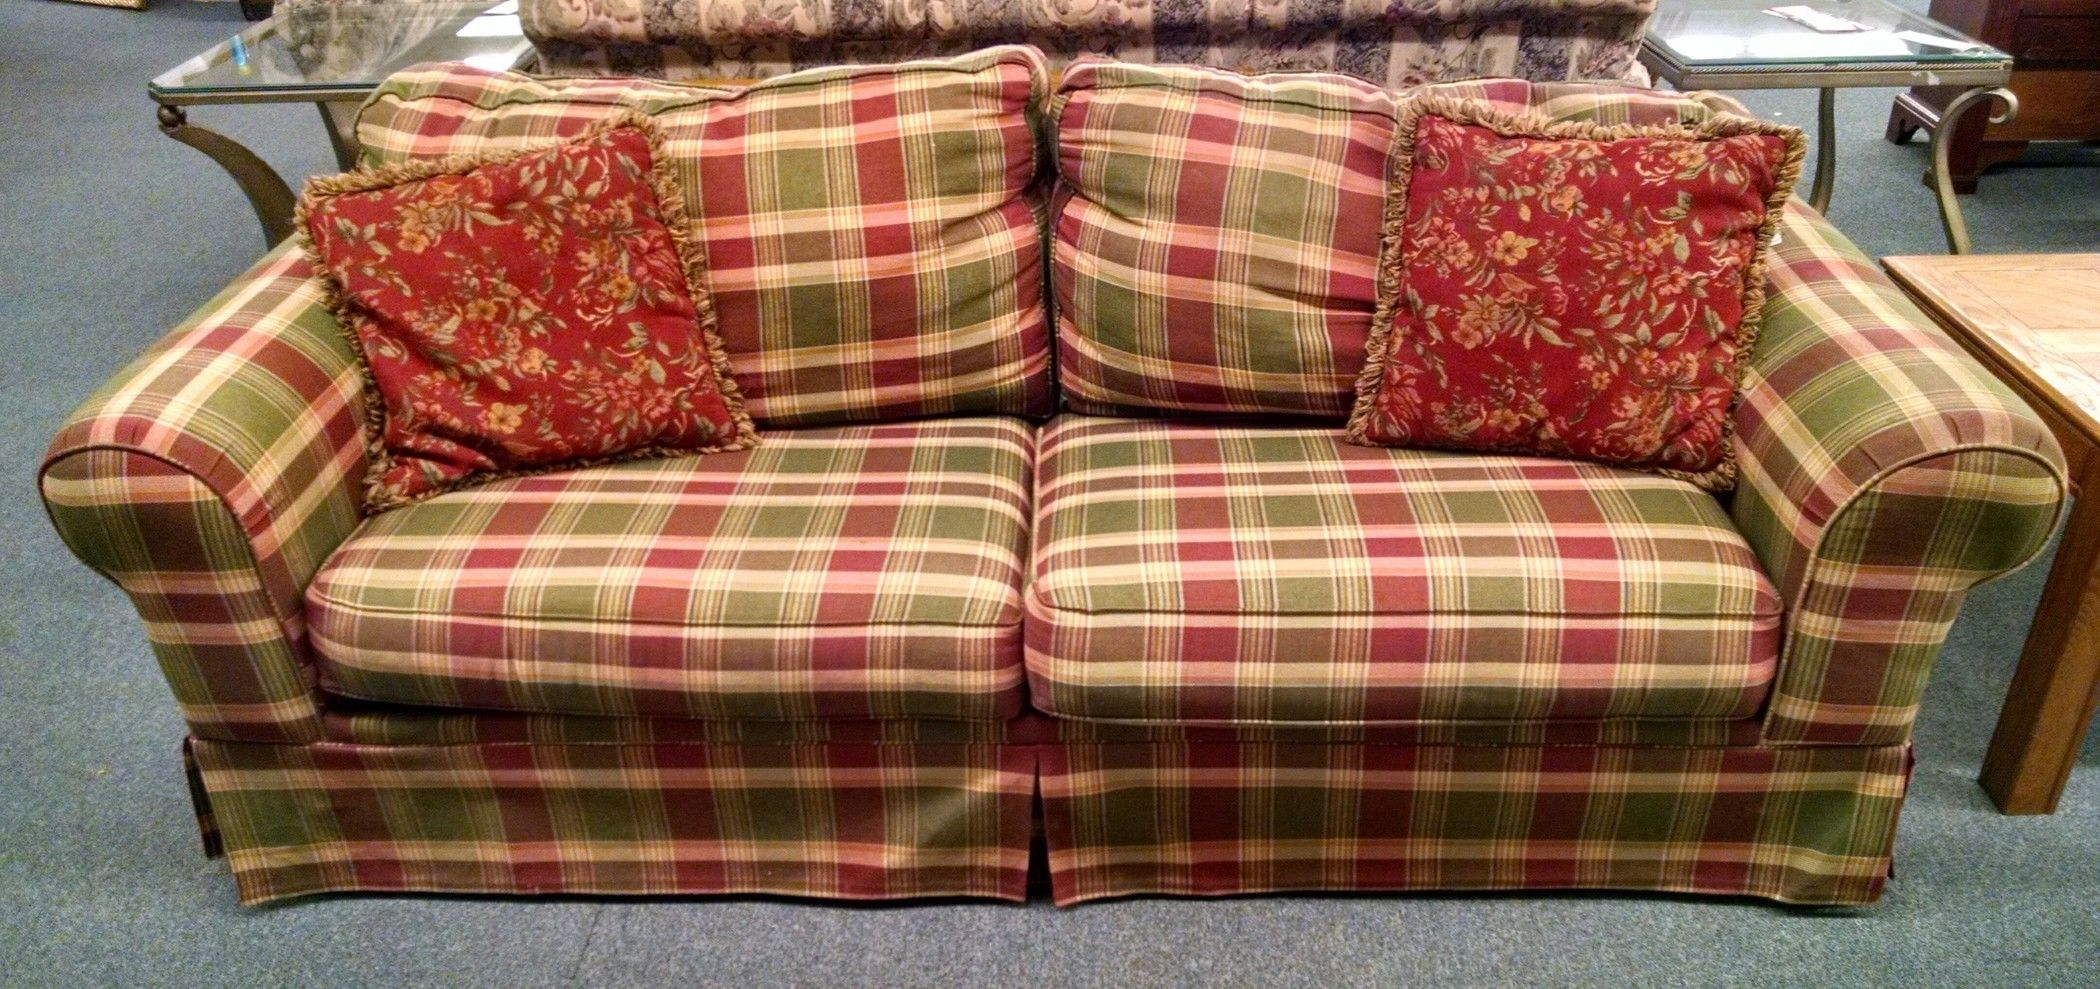 Plaid Sleeper Sofa Delmarva Furniture Consignment